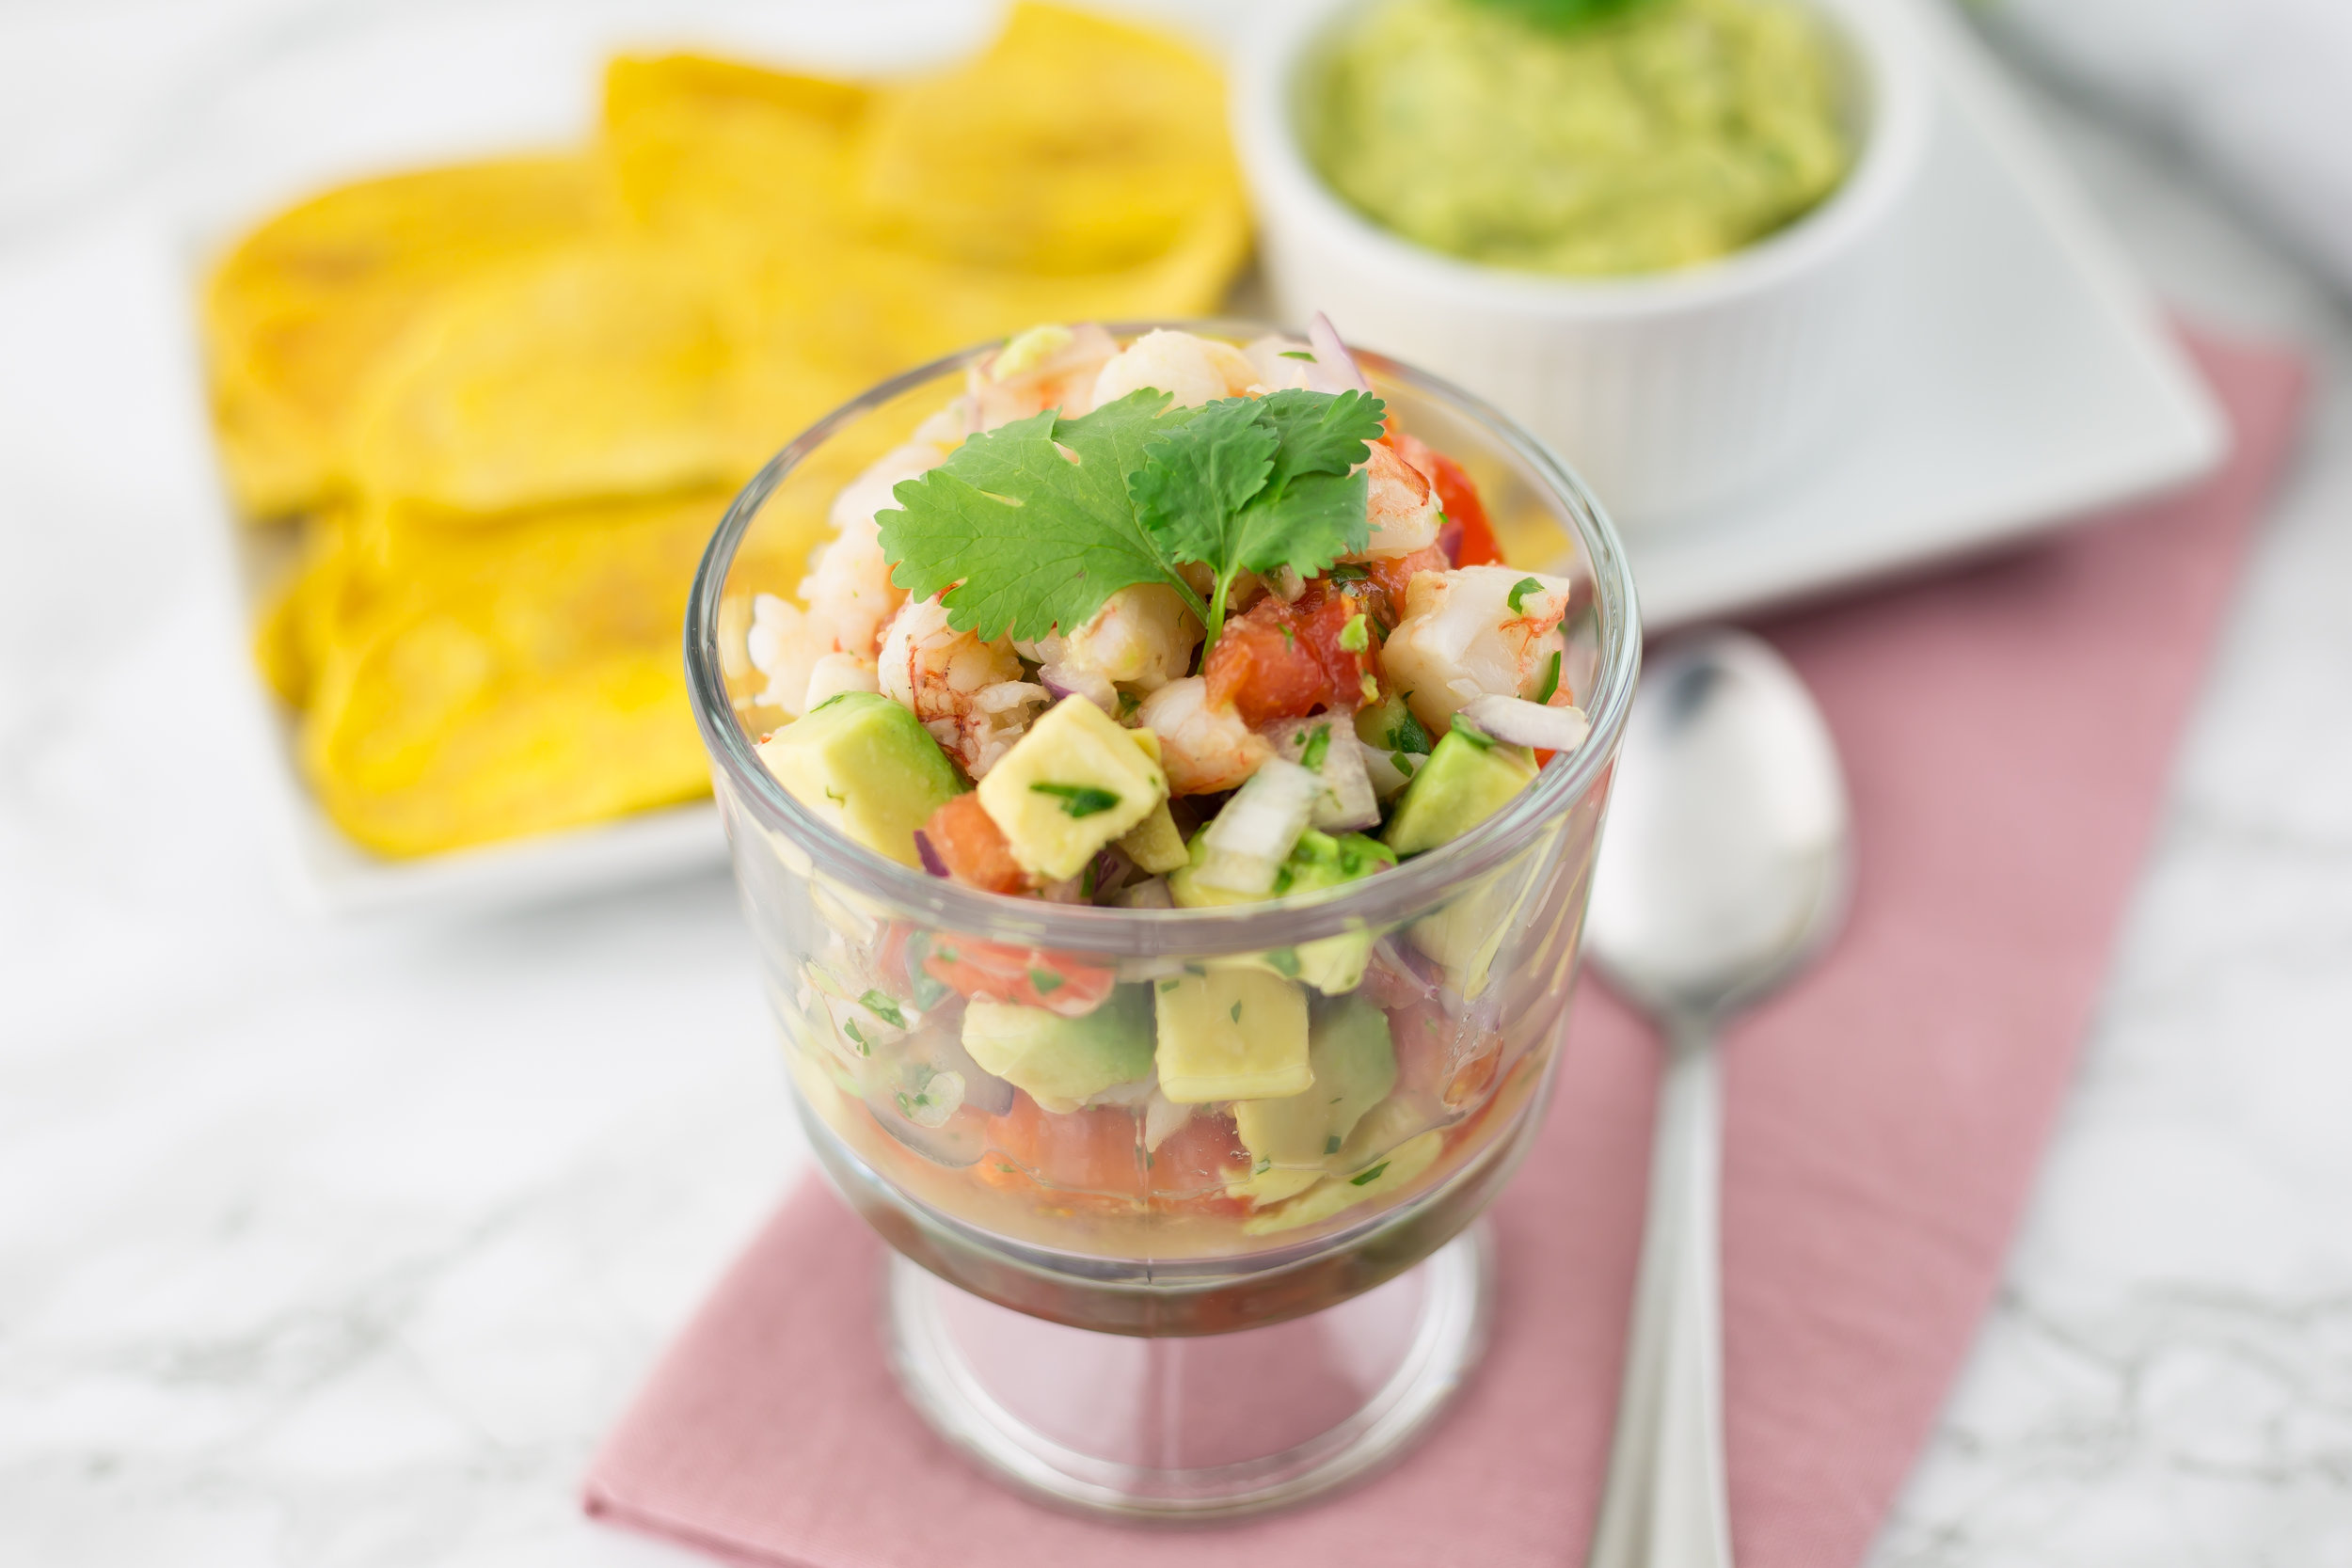 21 Day Sugar Detox Recipes, Shrimp, Shrimp Ceviche, Plantains, Plantain Chips, Real Food, Non-processed, Whole30, 21DSD, Primal, Paleo, Gluten Free, Grain Free, Dairy Free